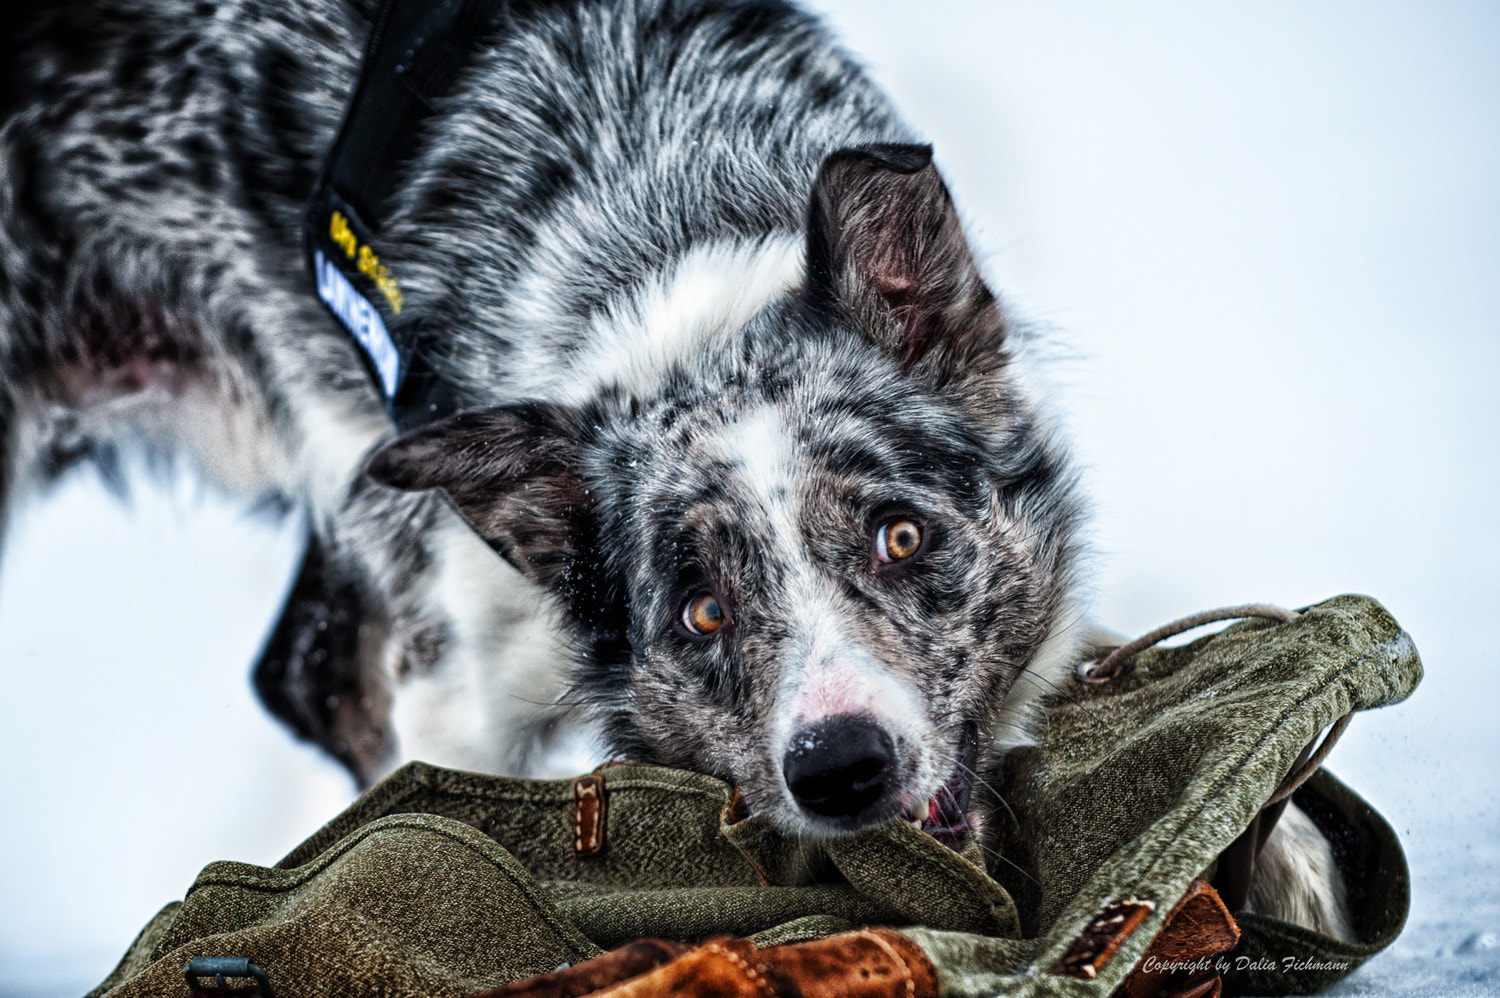 Photograph Avalanche dog by Dalia Fichmann on 500px